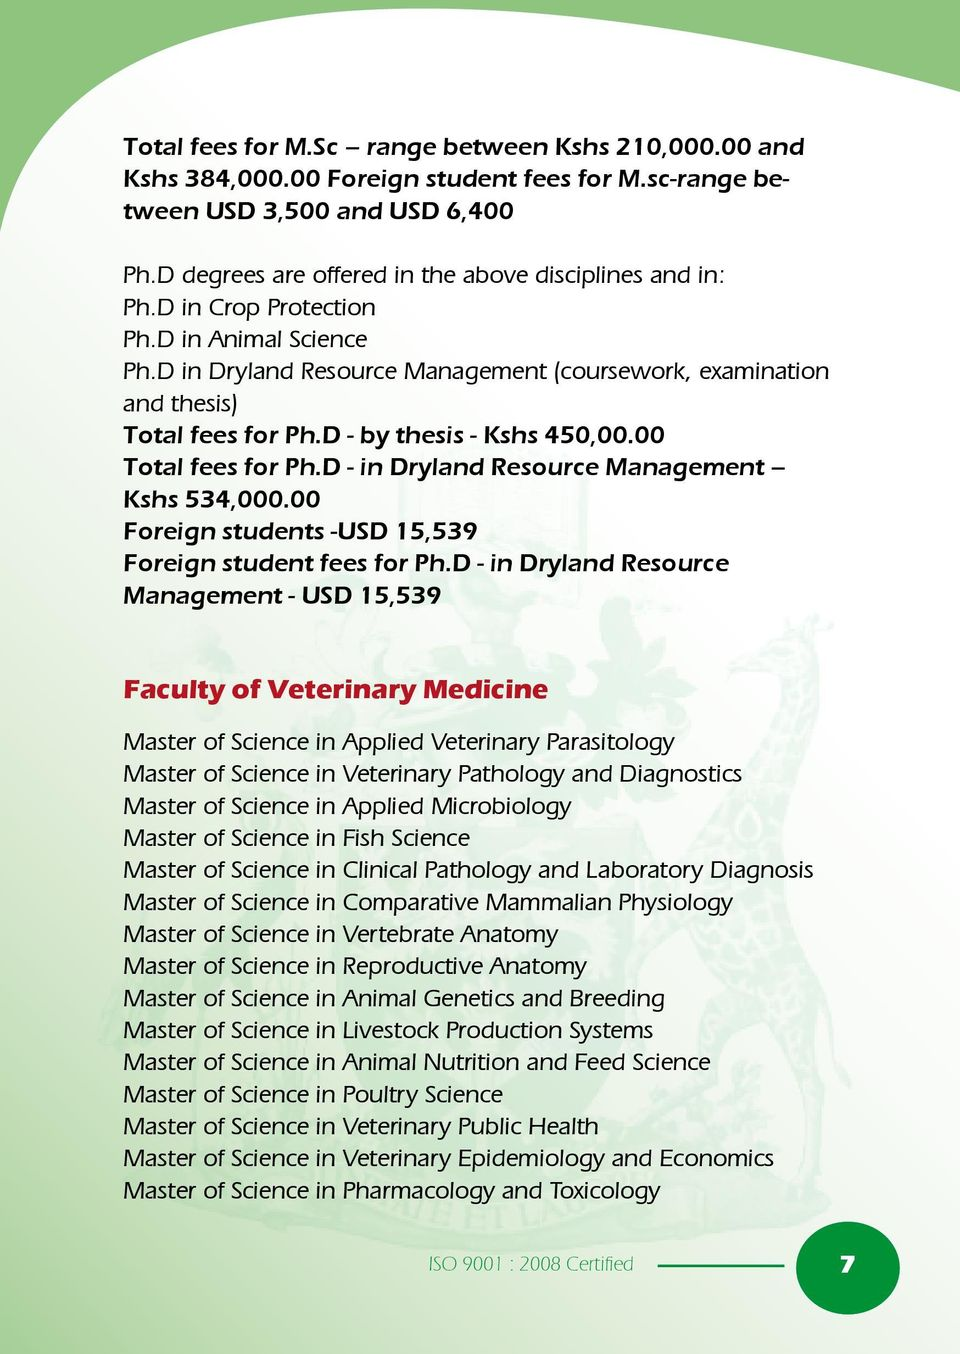 D - in Dryland Resource Management Kshs 534,000.00 Foreign students -USD 15,539 Foreign student fees for Ph.